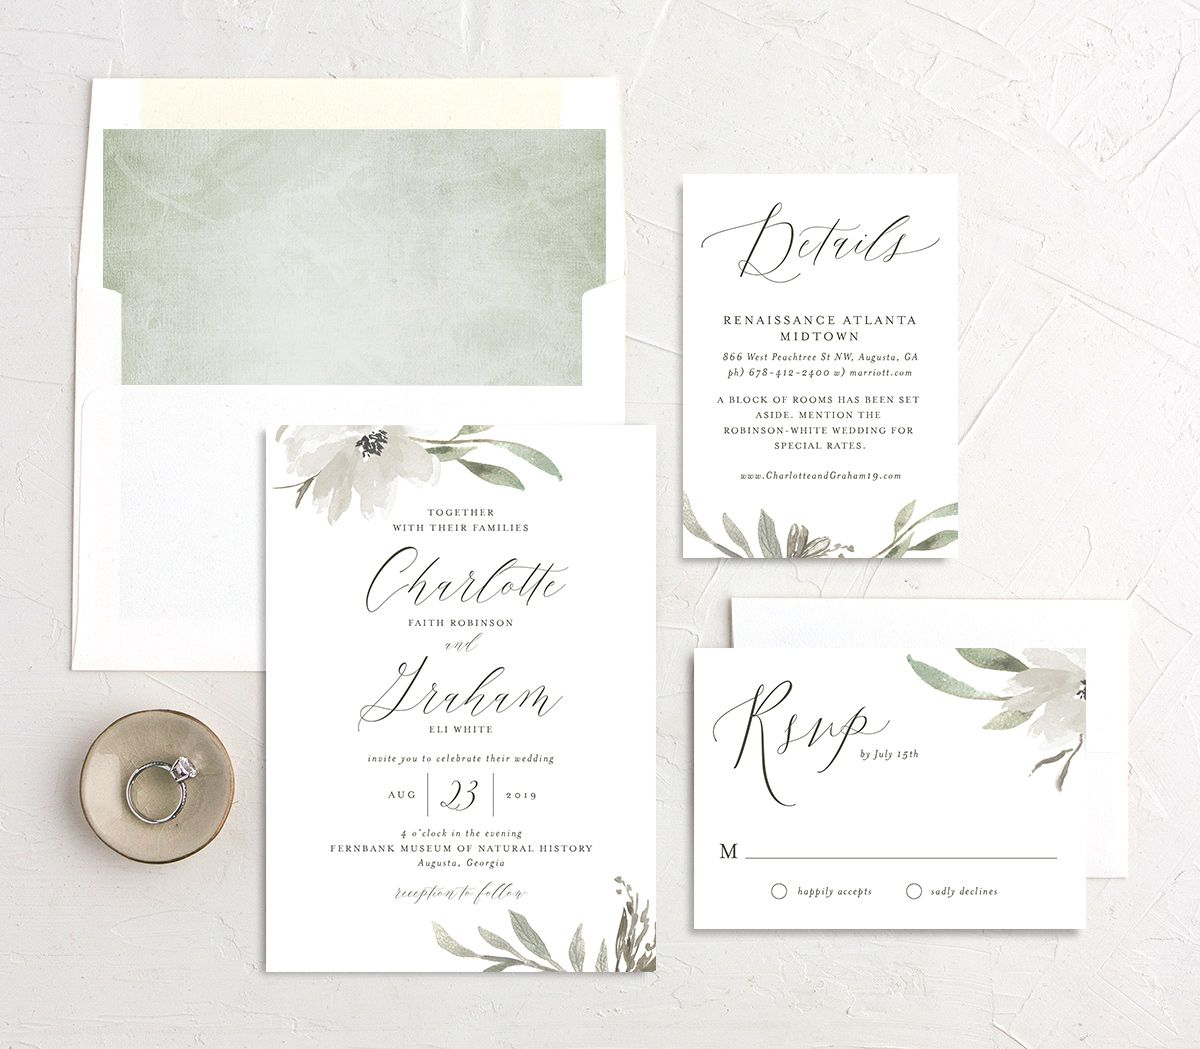 muted floral wedding invitation stationery suite in white